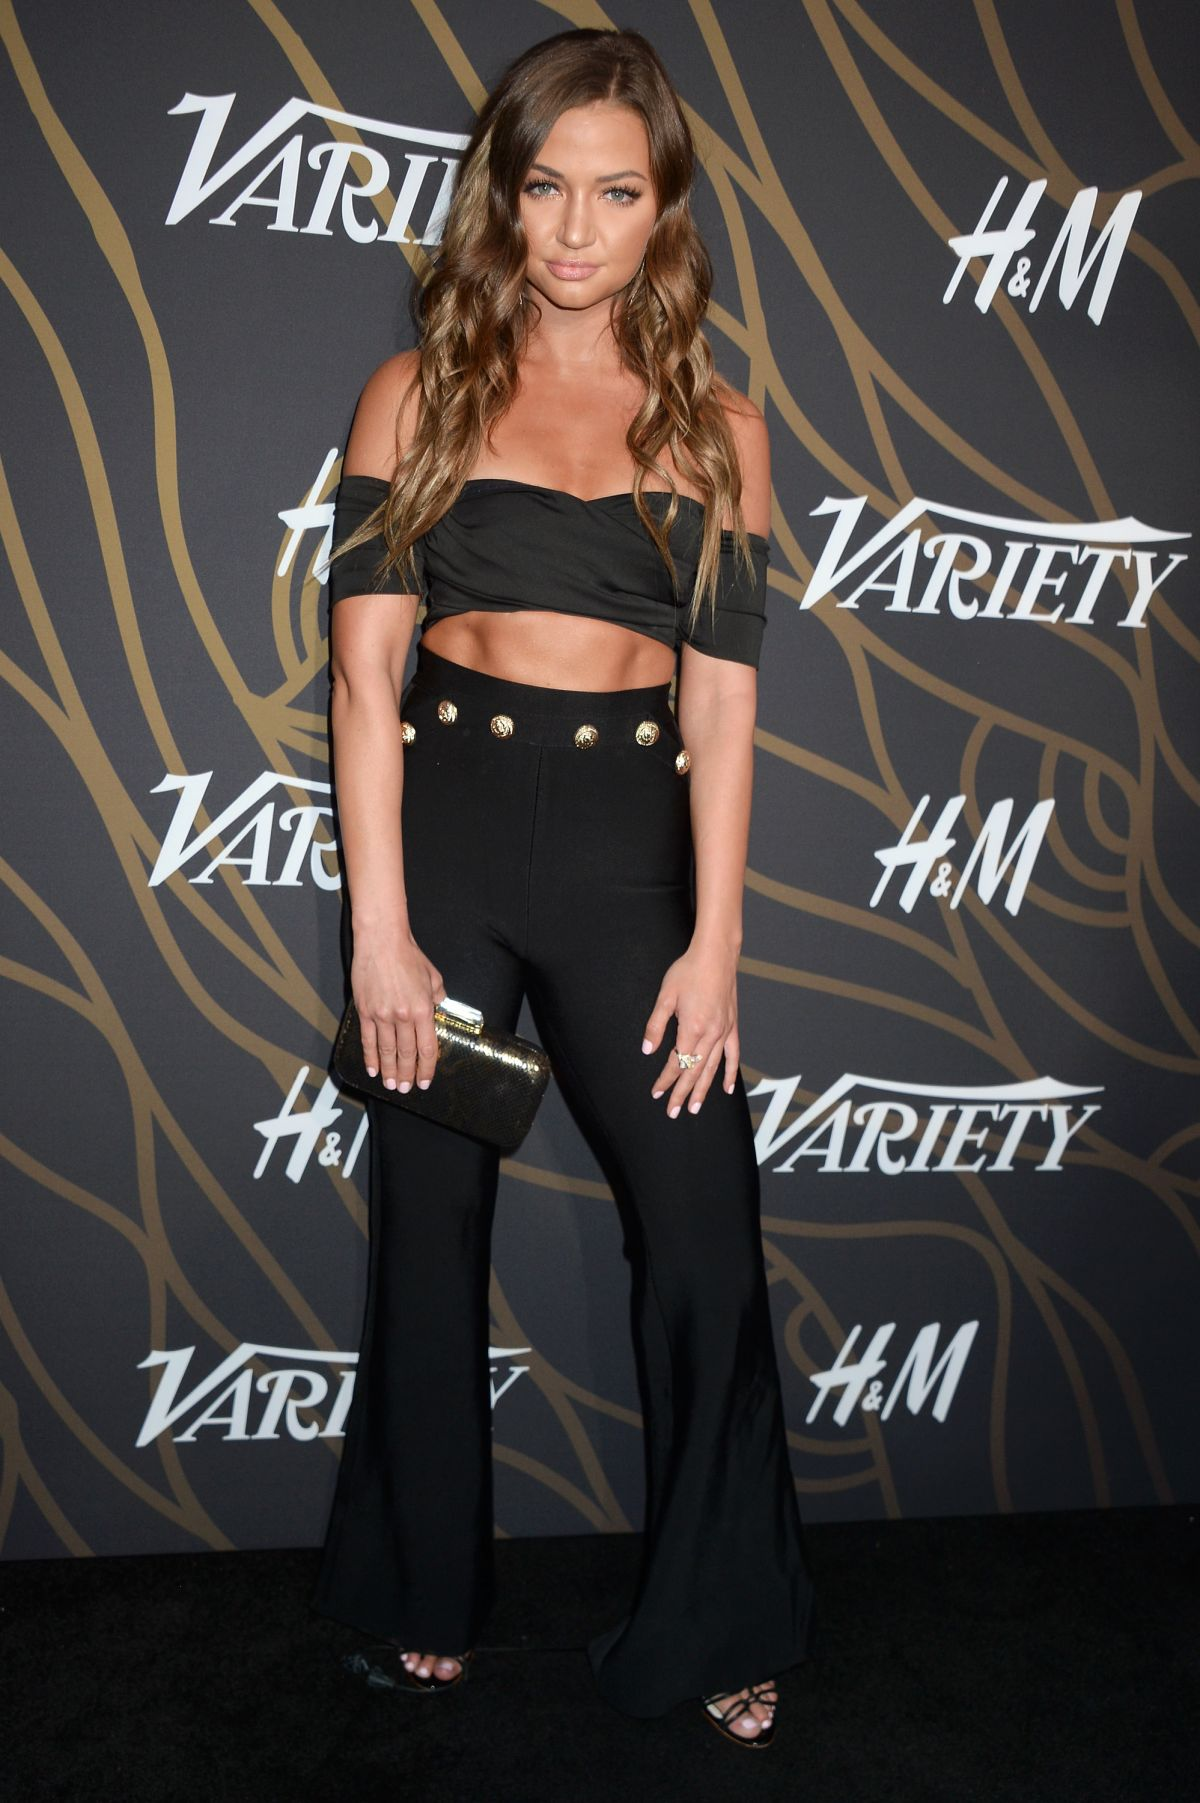 ERIKA COSTELL at Variety Power of Young Hollywood in Los Angeles 08/08/2017